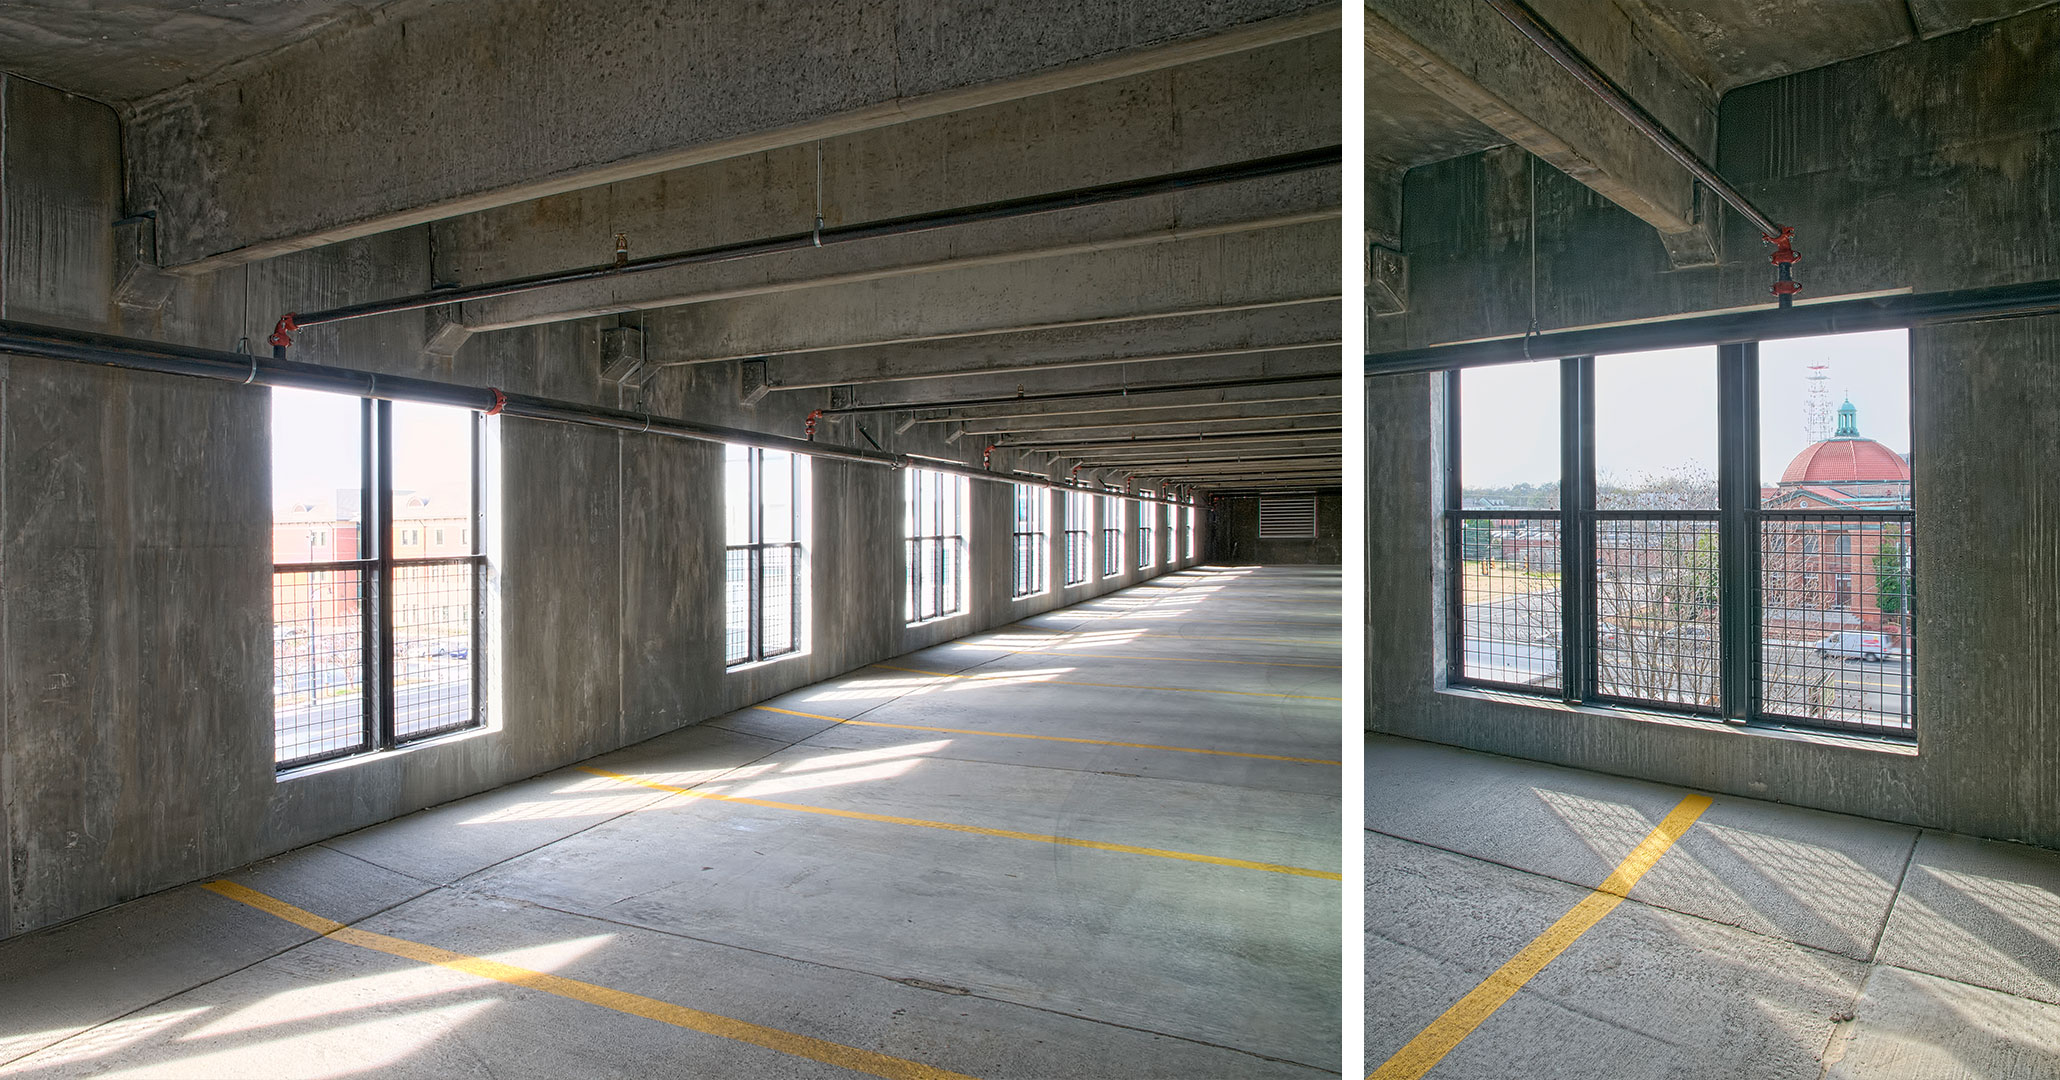 Boudreaux worked with the City of Florence to build the Cheves Parking Garage.